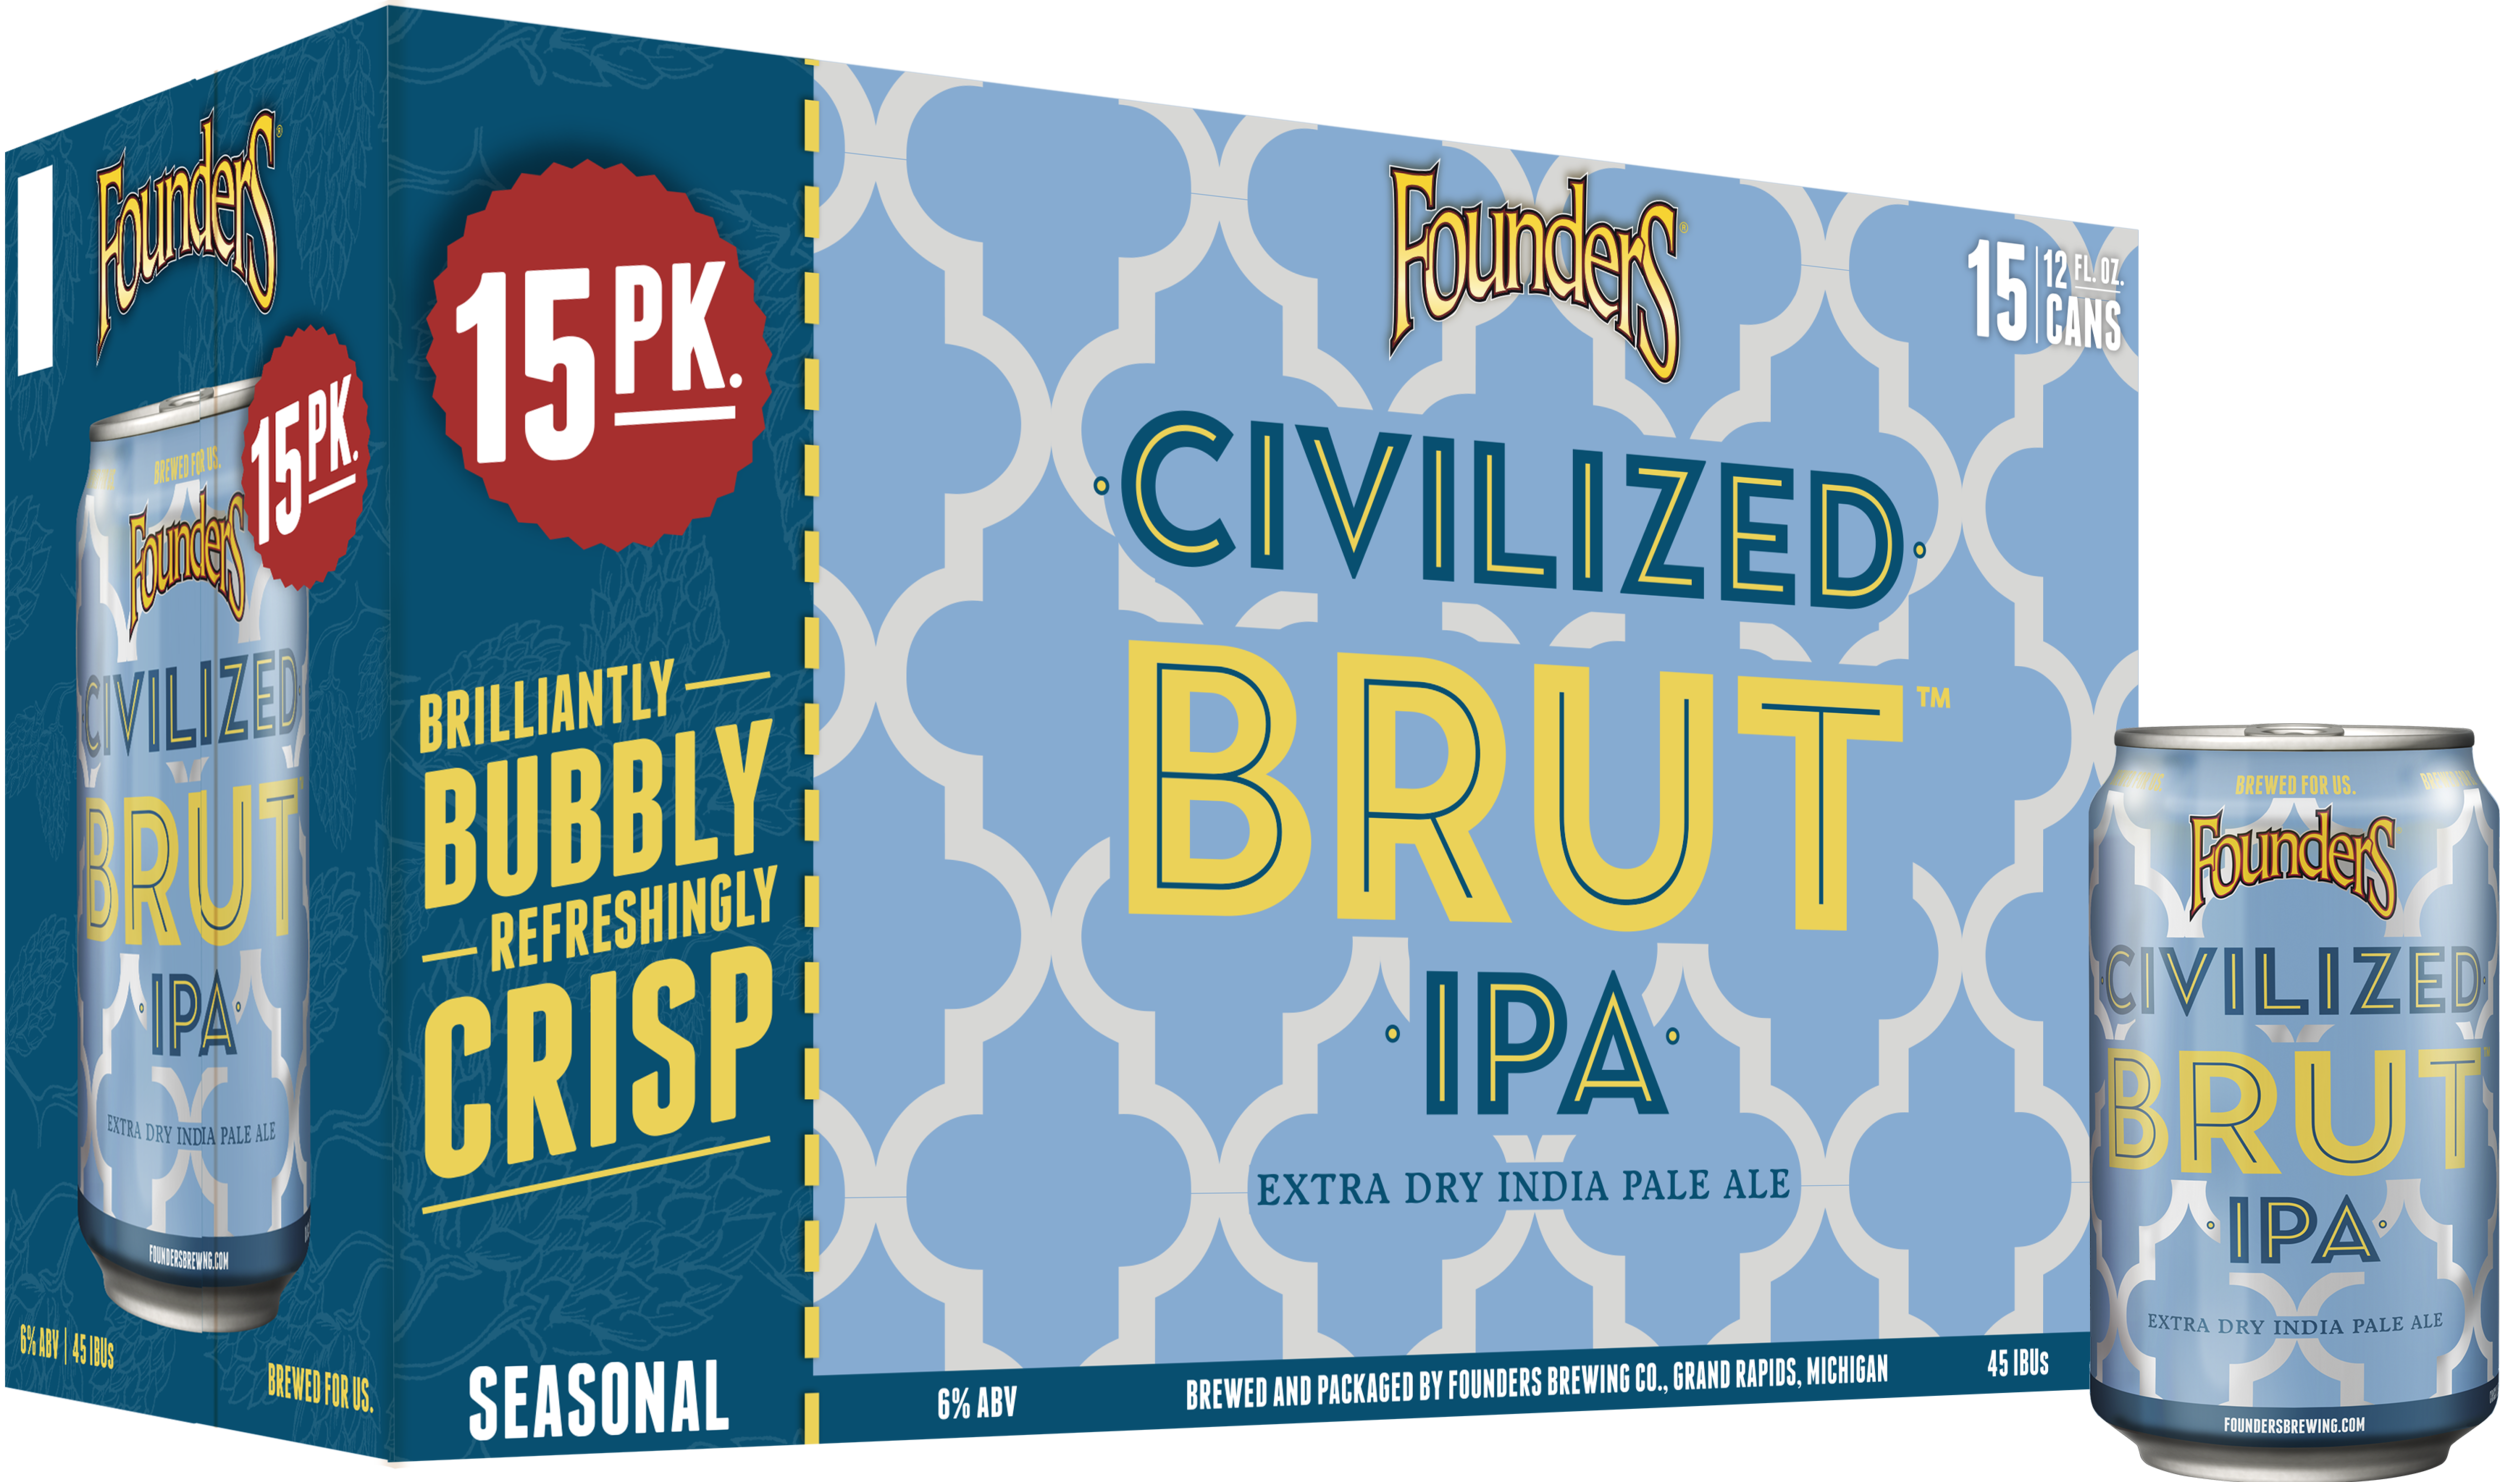 civilized_brut_ipa_15_pack_can_carrier_3-4_w-can.png